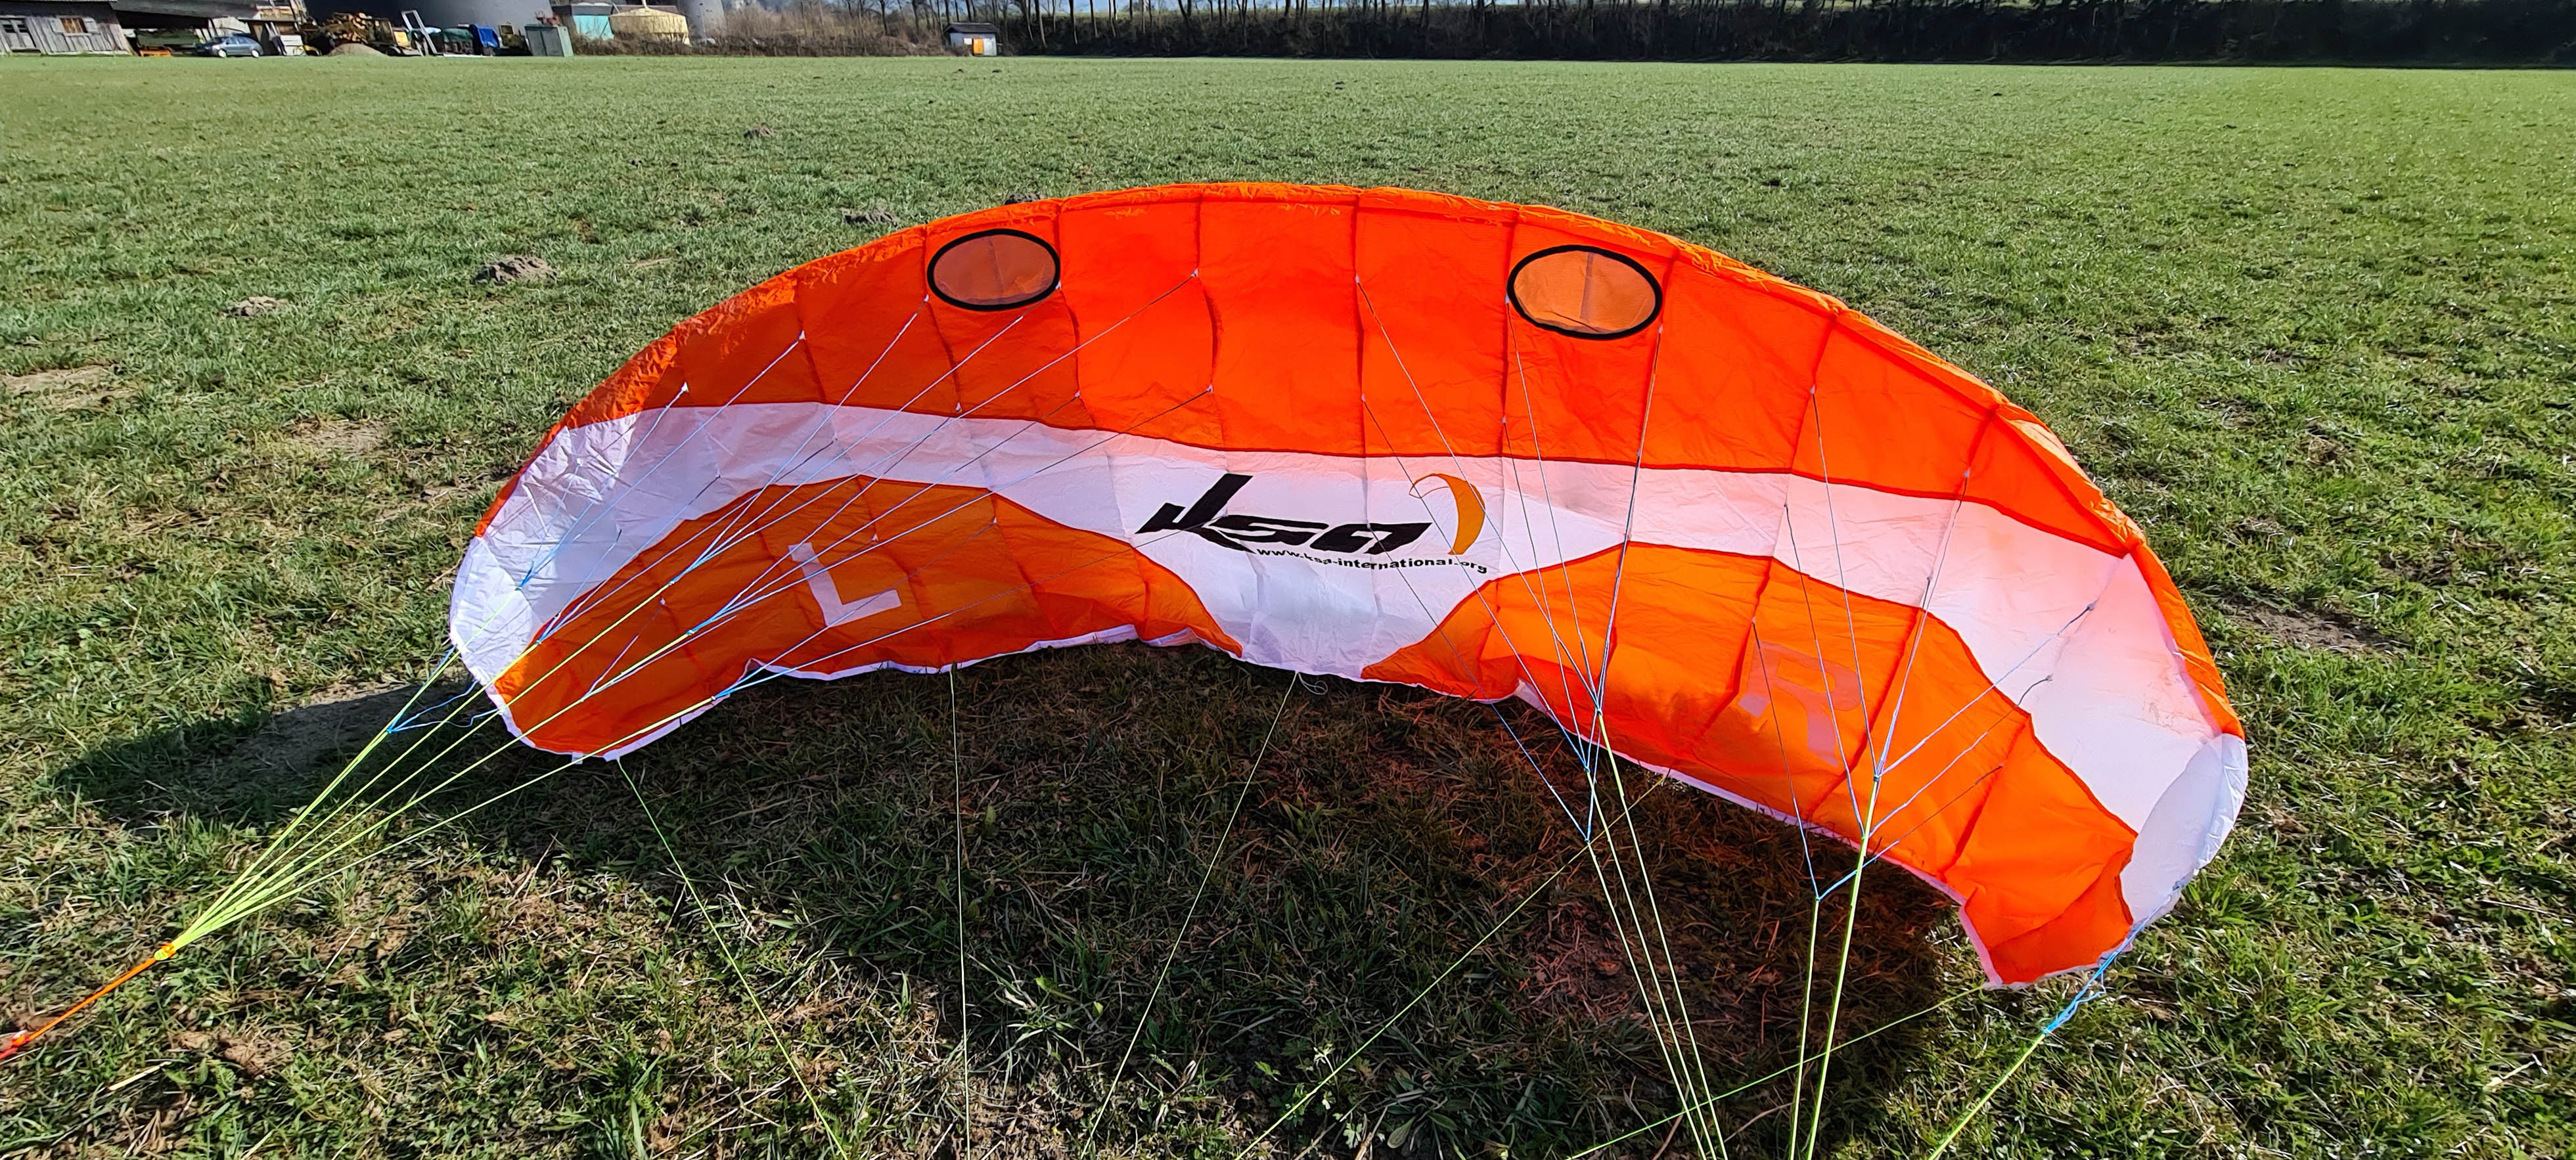 Softkite HQ Hydra 300 - Trainerkite, Trainingskite, Kite